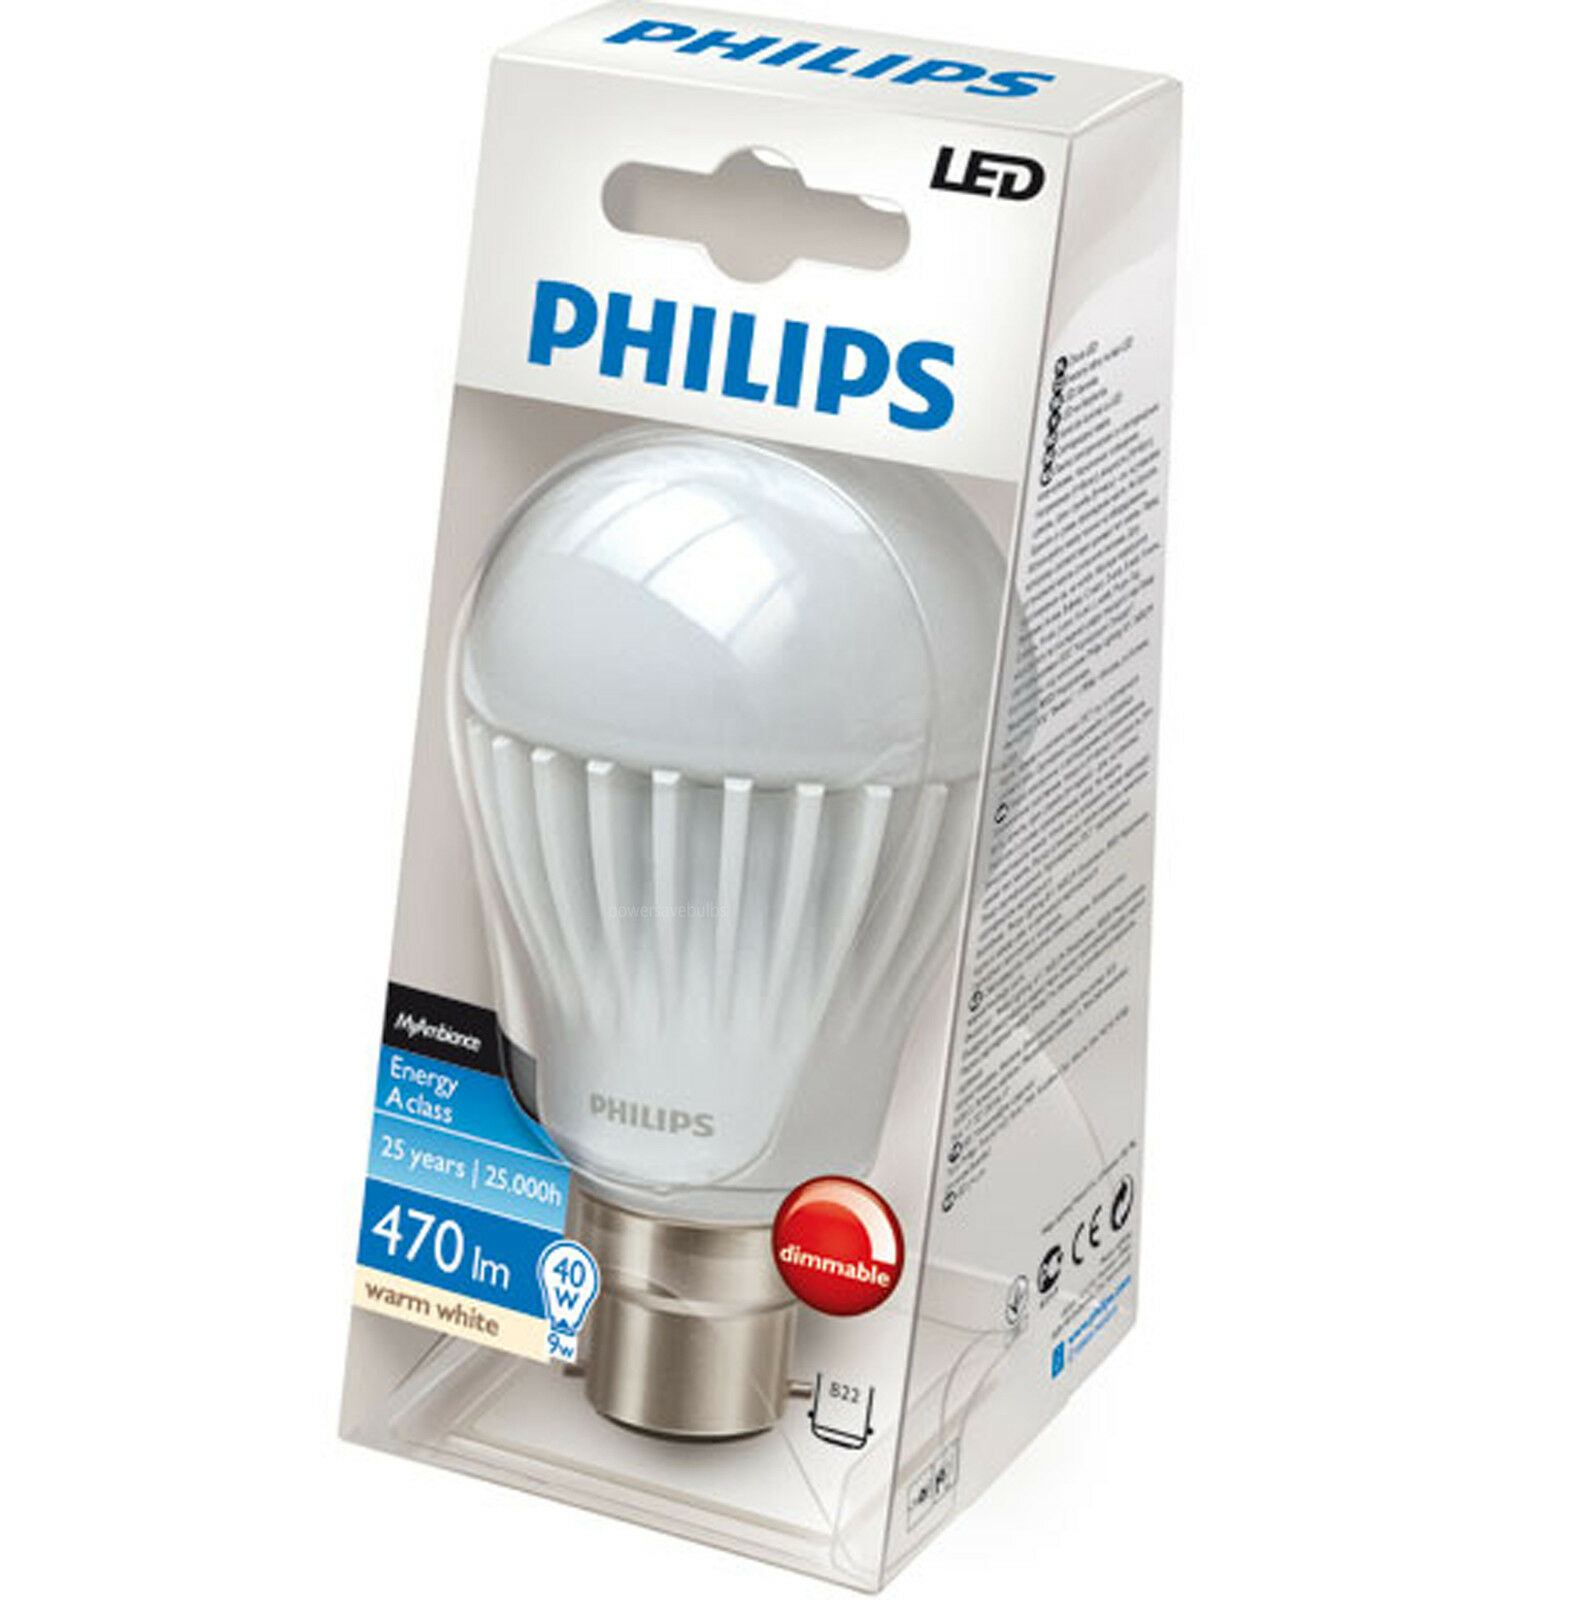 10 12 8 6 4 3 LED PHILIPS LOW ENERGY SAVING 9w=40w DIMMABLE BC B22 LIGHT BULBS